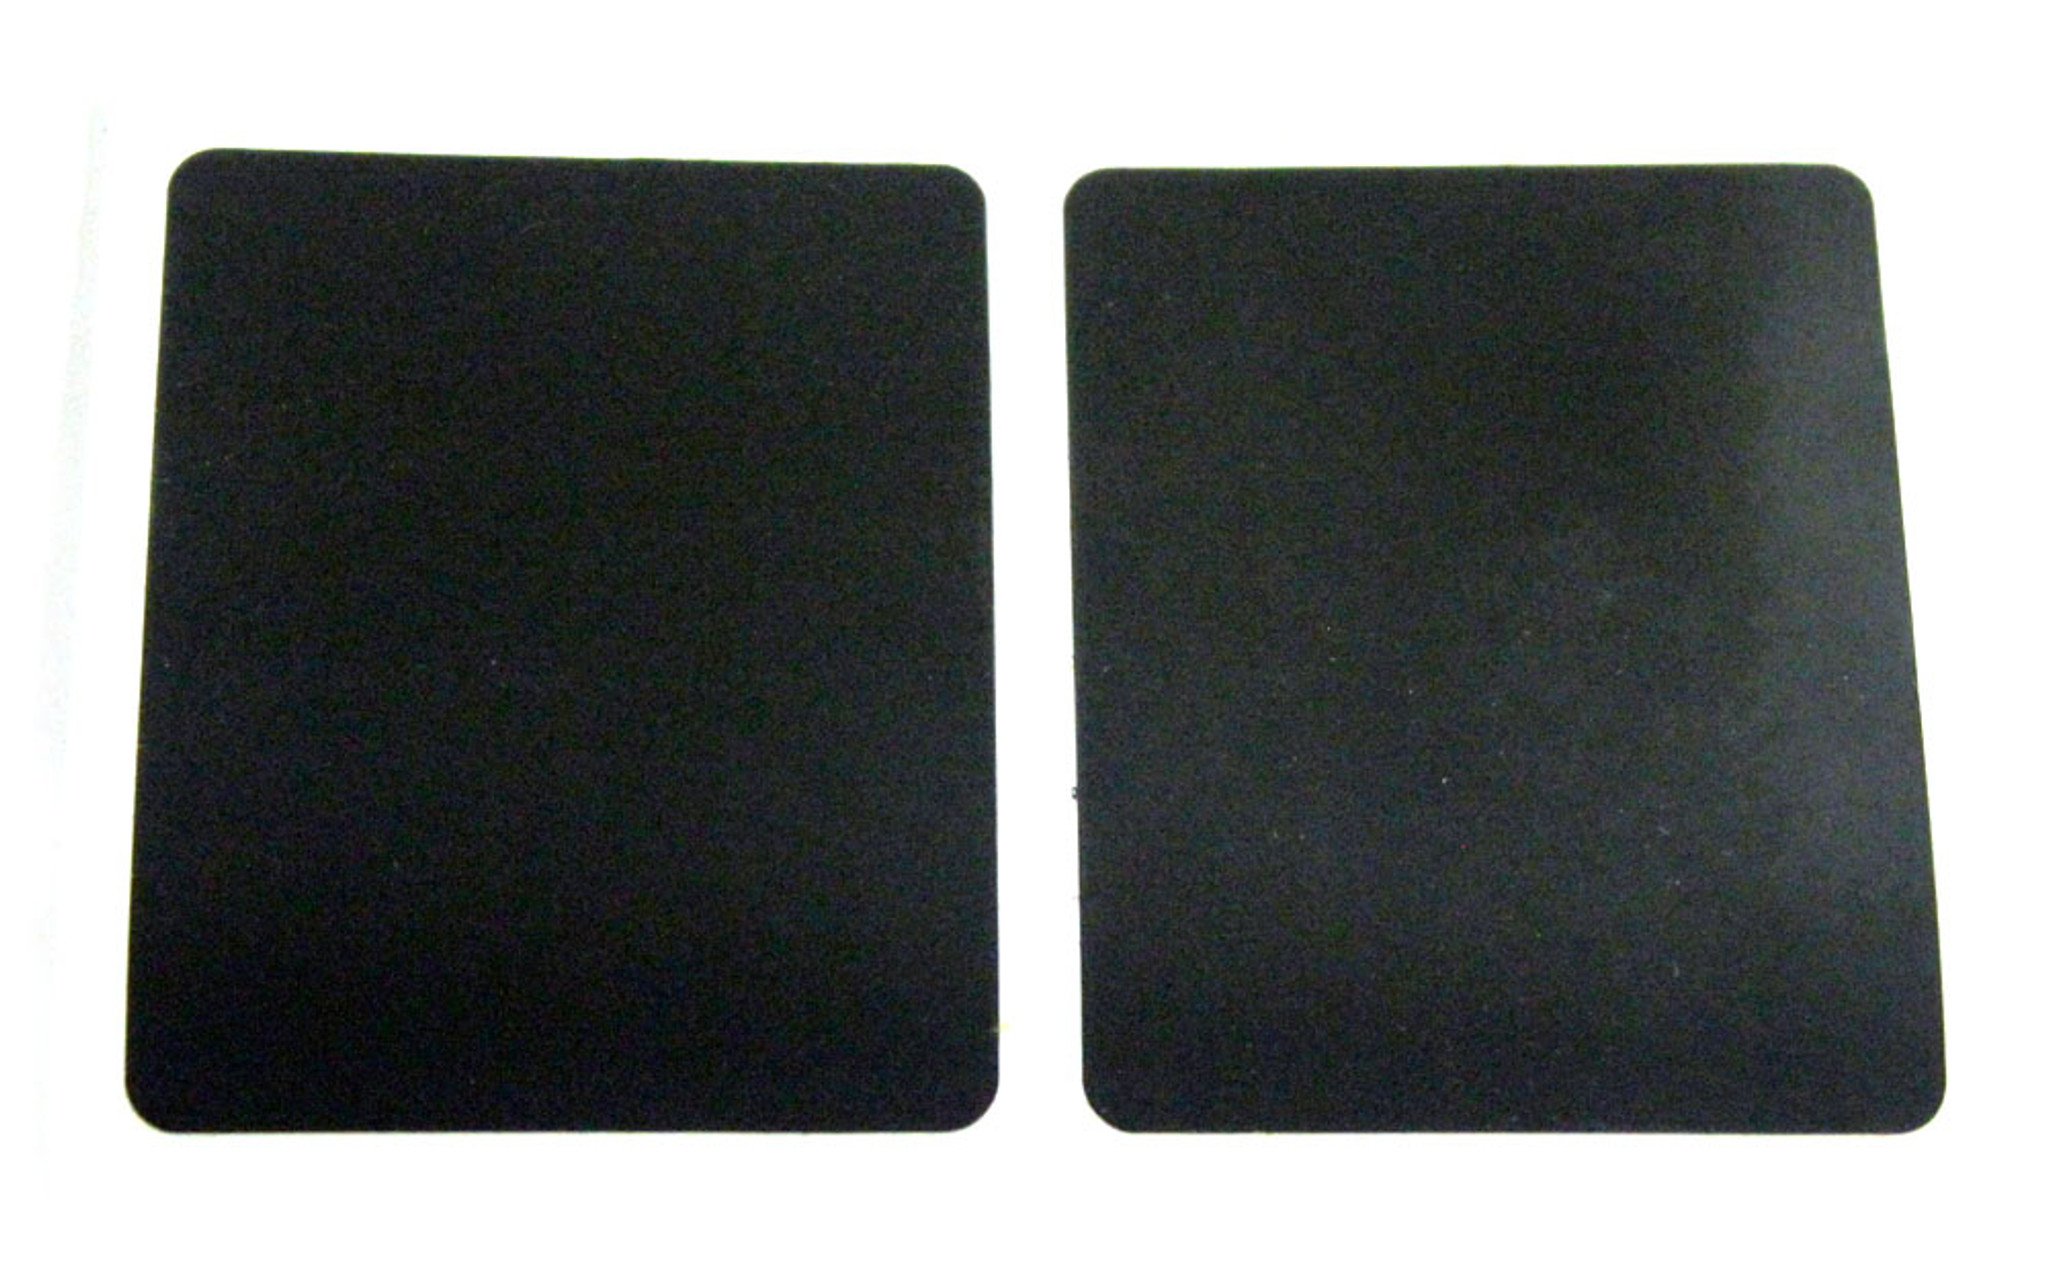 1 Pair Yakima Tower Q #0638 Q38 Clips Pads Stickers Roof Rack NOS 1995 for sale online